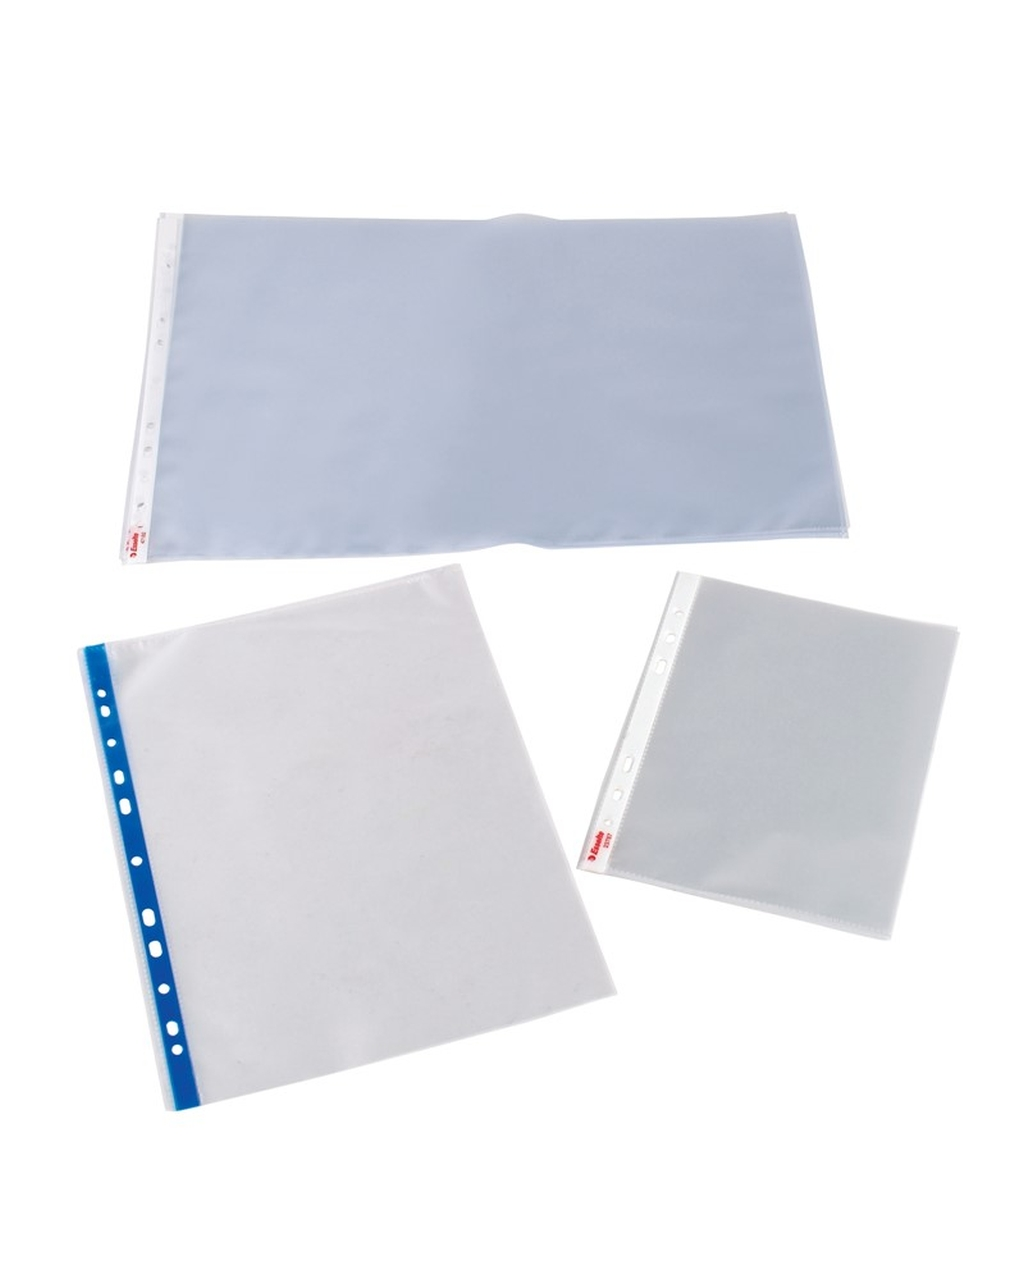 A3 Landscape Plastic Punched Pockets